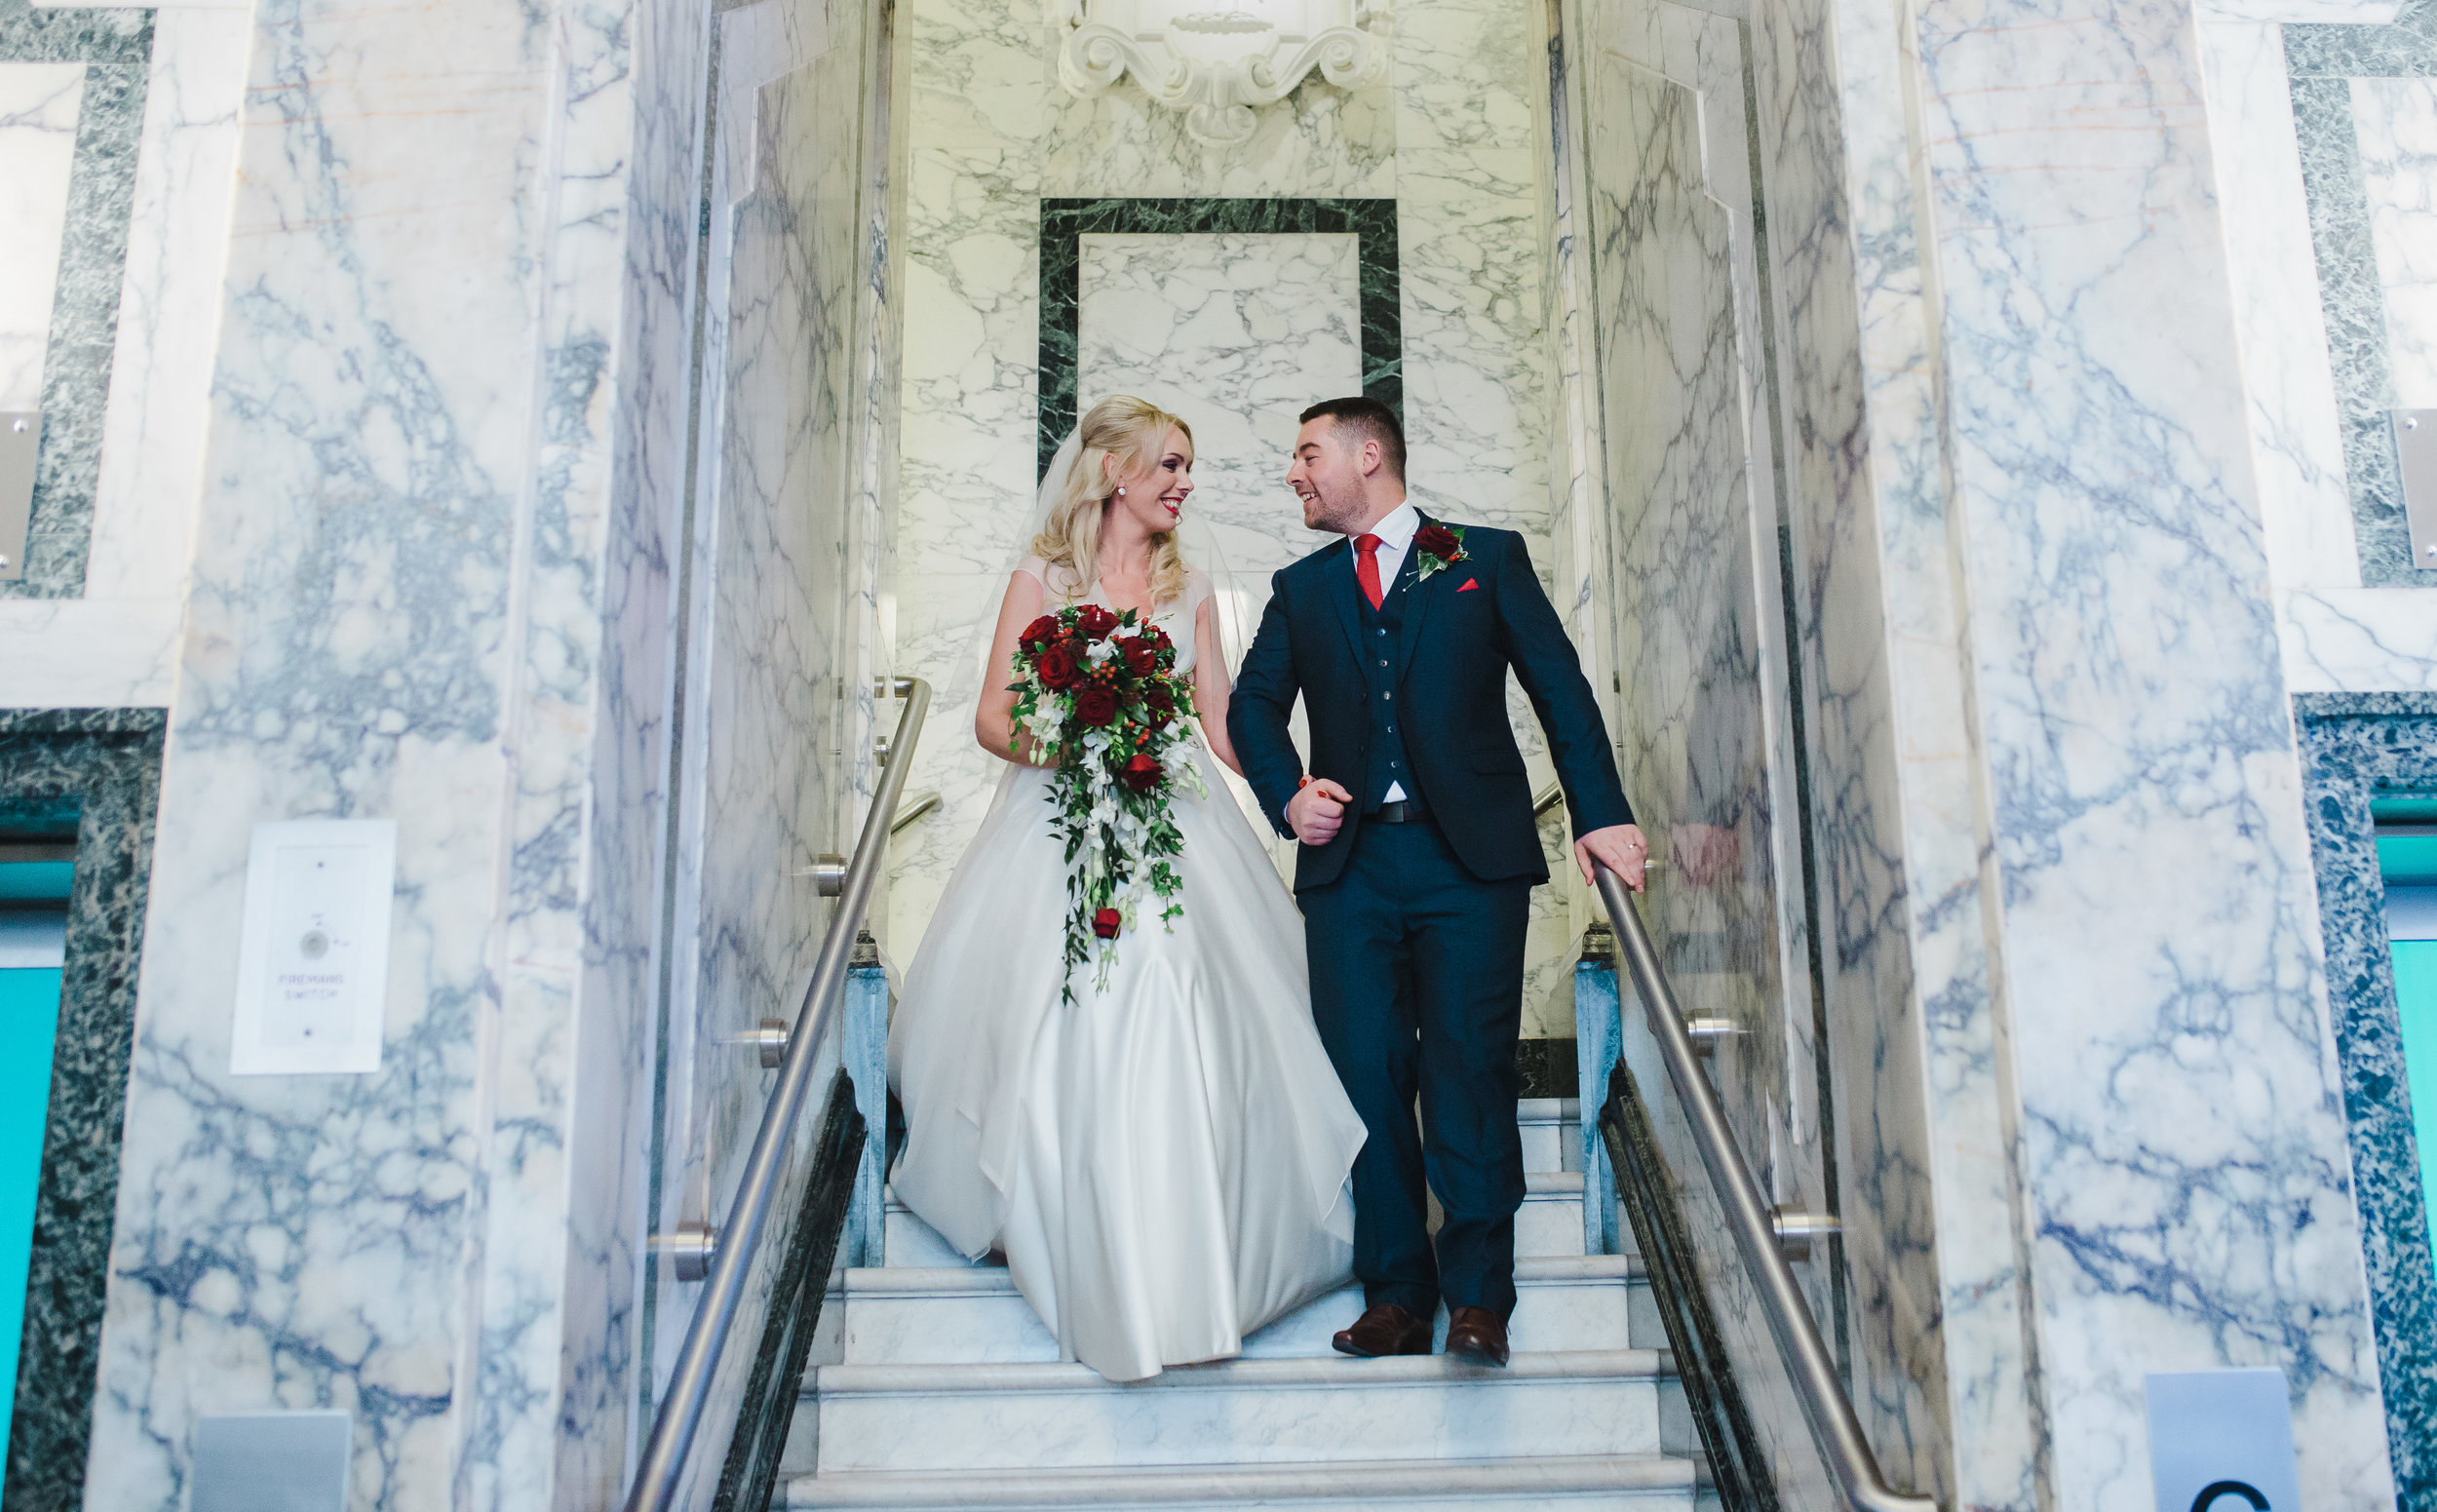 amazing building - Liverpool wedding photography